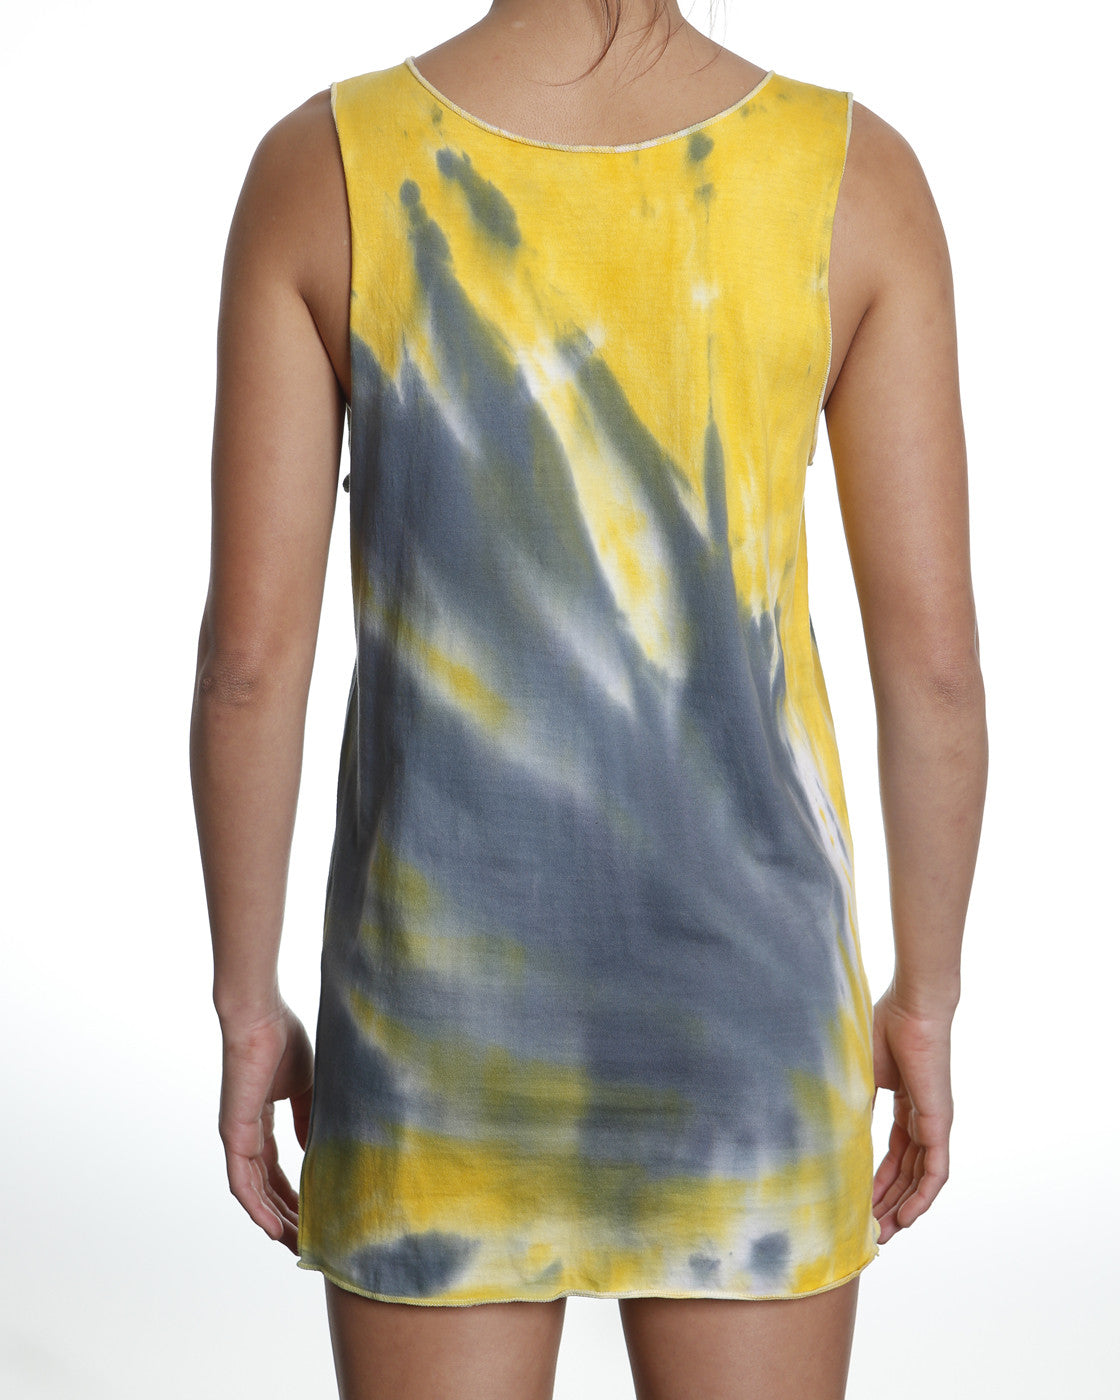 Spike Brooklyn Dip Dye Tank Top